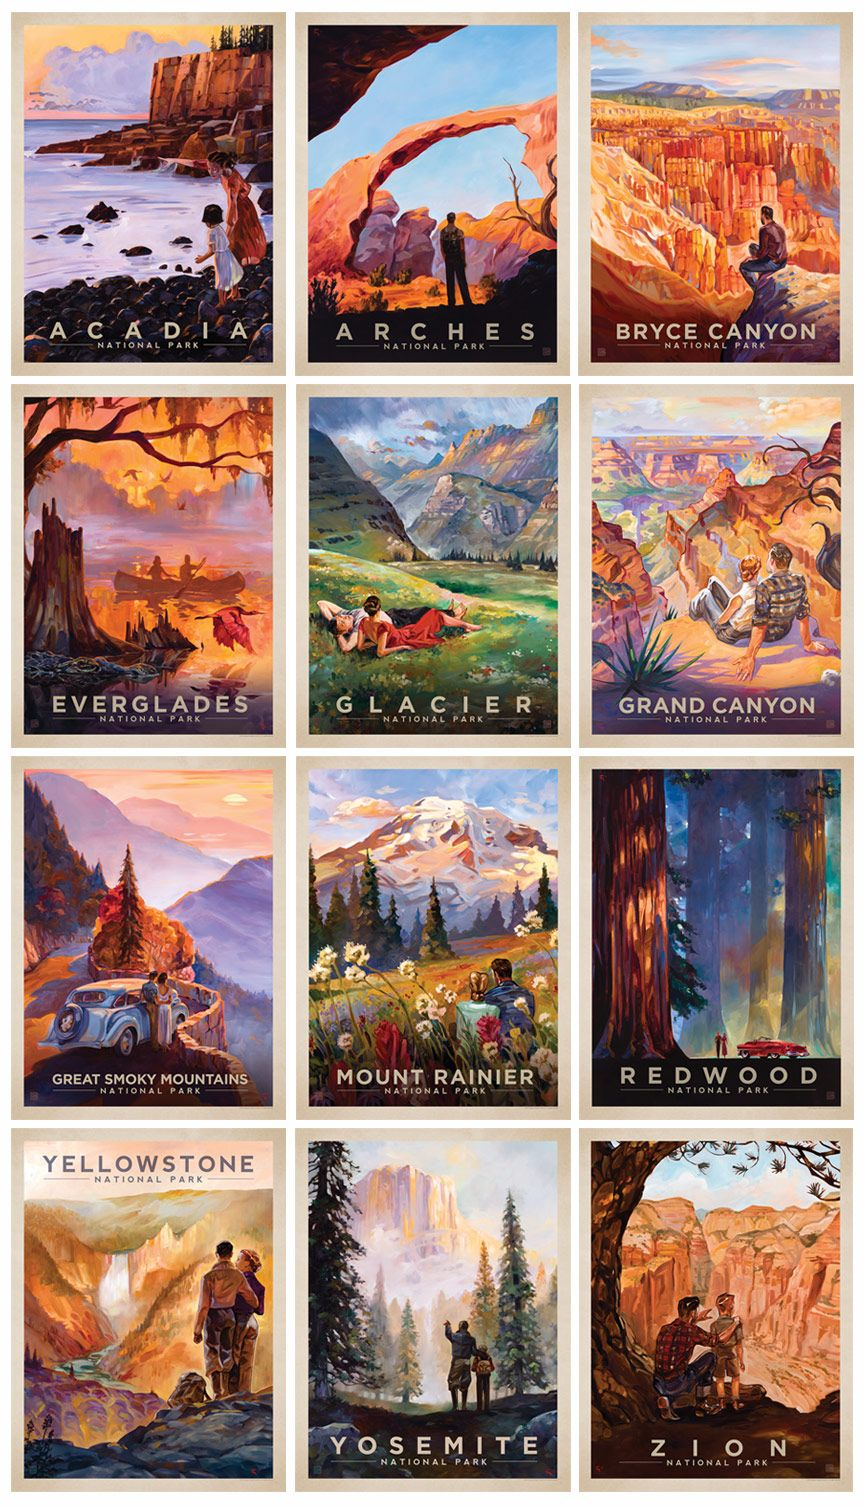 Poster design blog - Anderson Design Group Blog After 5 Years We Have Completed Our National Parks